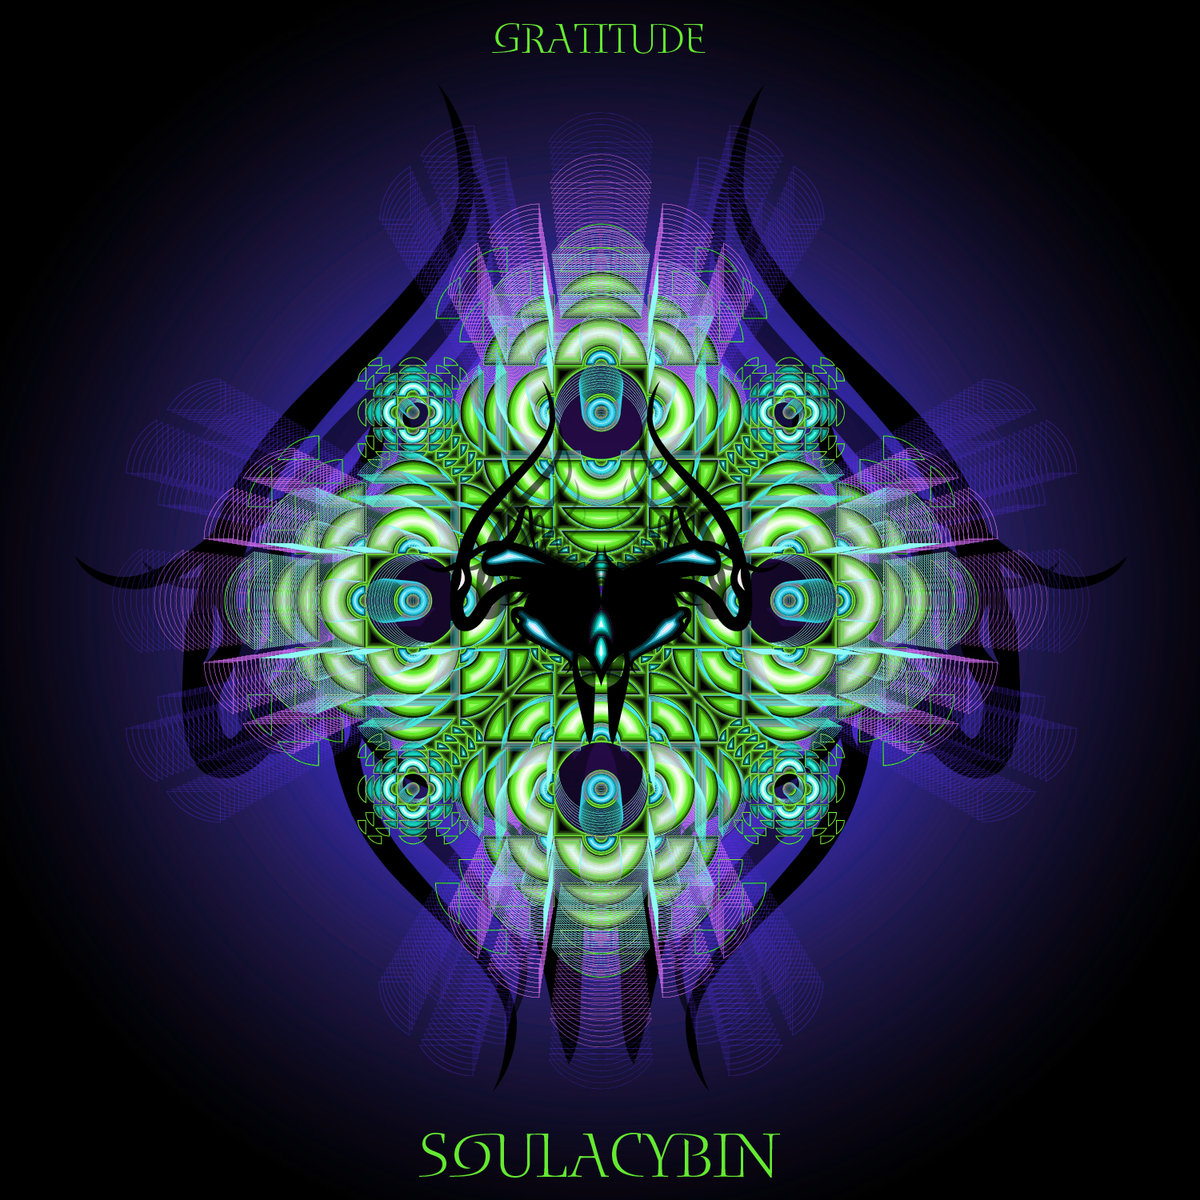 Soulacybin feat. Alaya Love - The Activation Part 1 @ 'Gratitude' album (electronic, ambient)